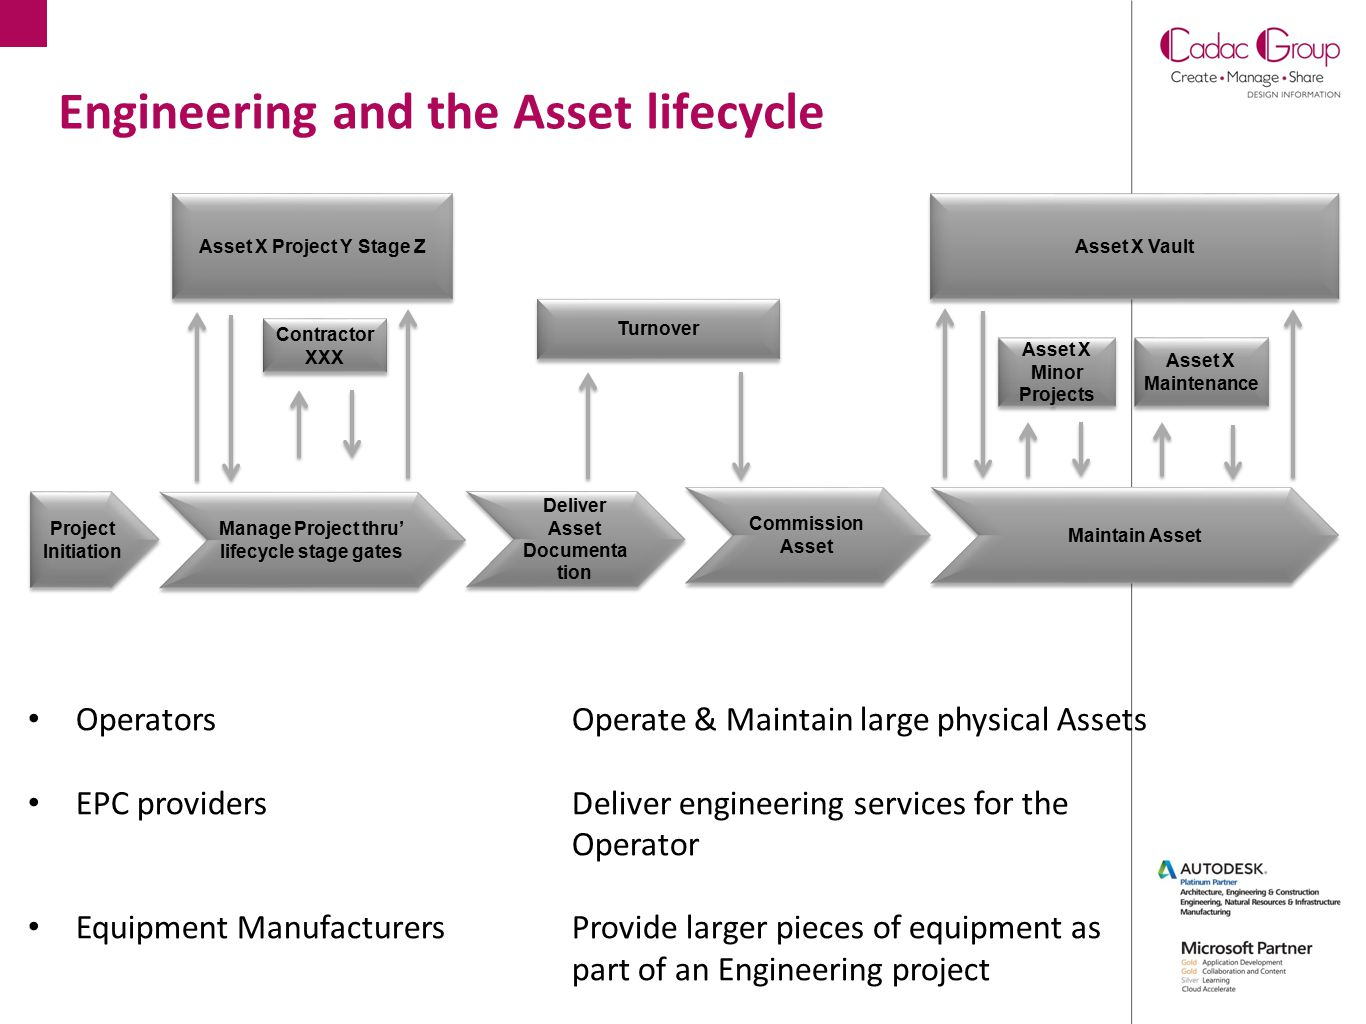 Engineering and the Asset lifecycle Project Initiation Manage Project thru' lifecycle stage gates Deliver Asset Documenta tion Commission Asset Mainta